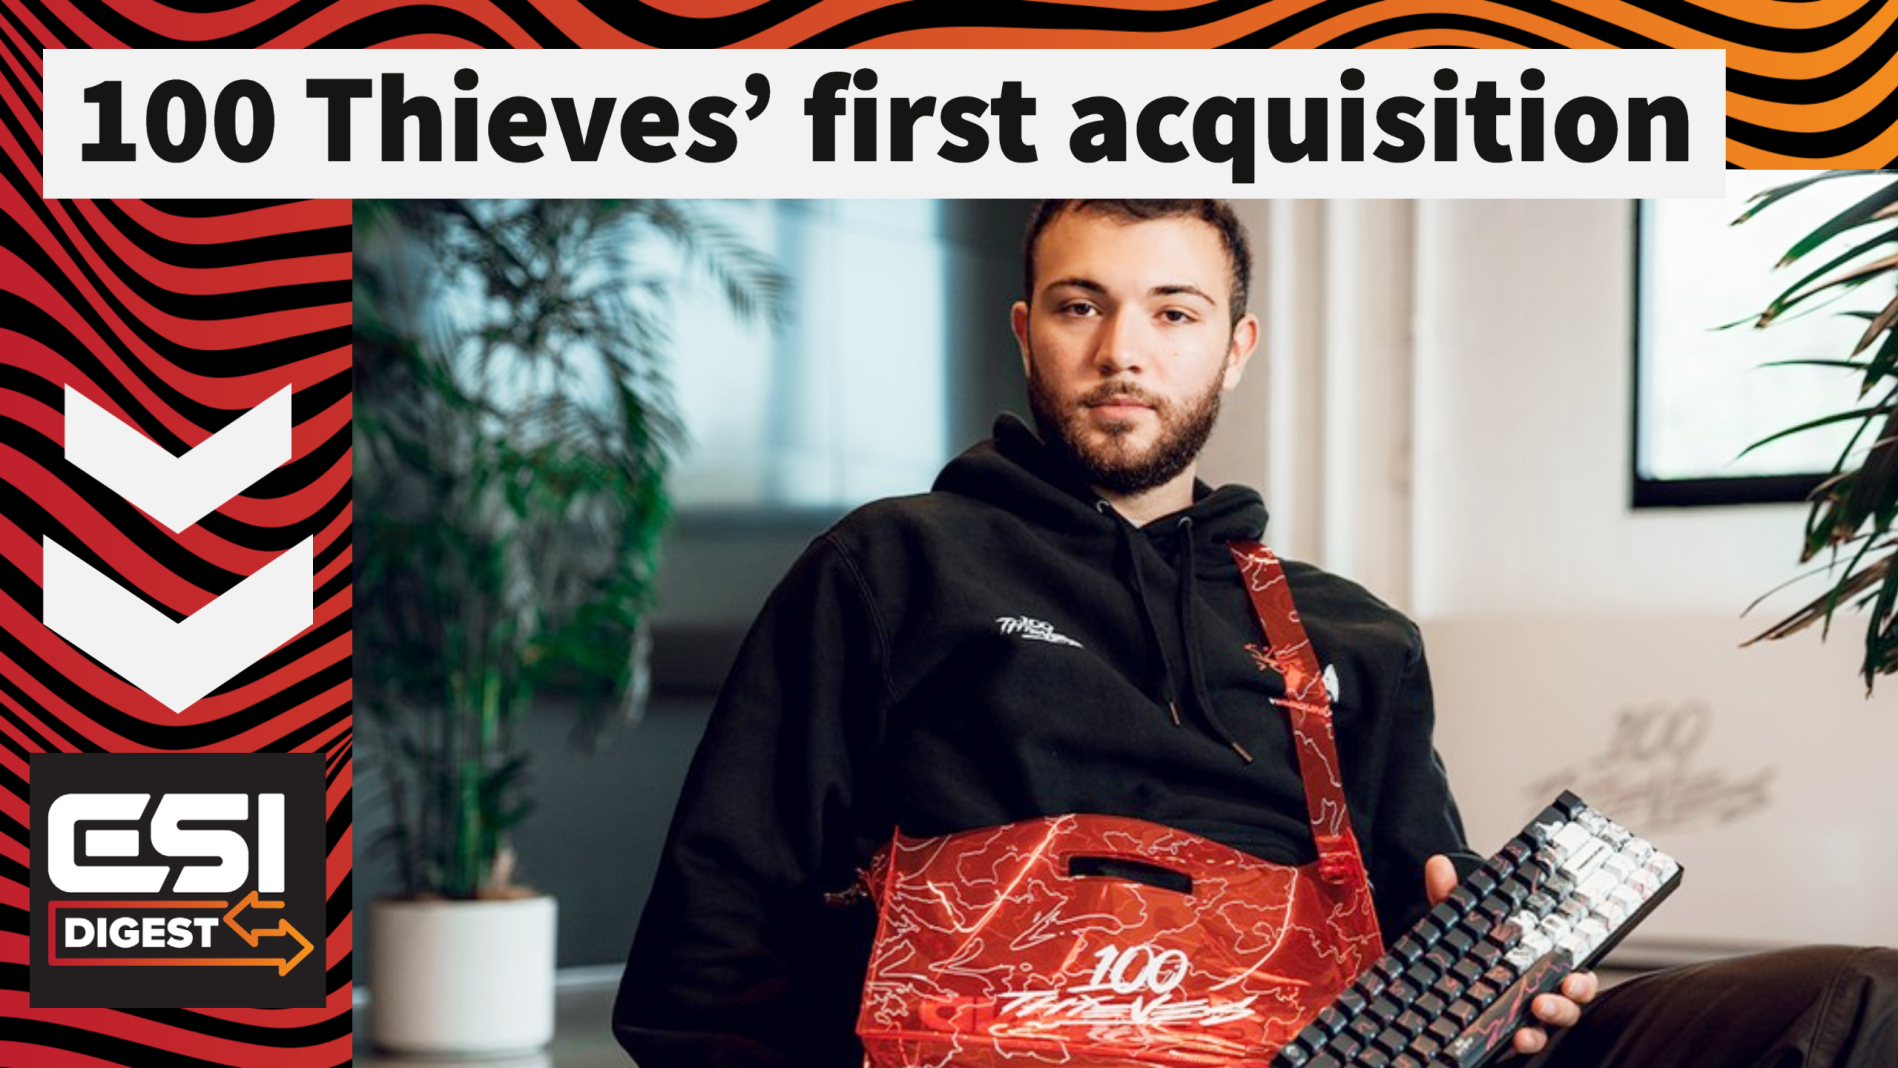 100 Thieves take the Higround, FACEIT gets Gucci | ESI Digest #64